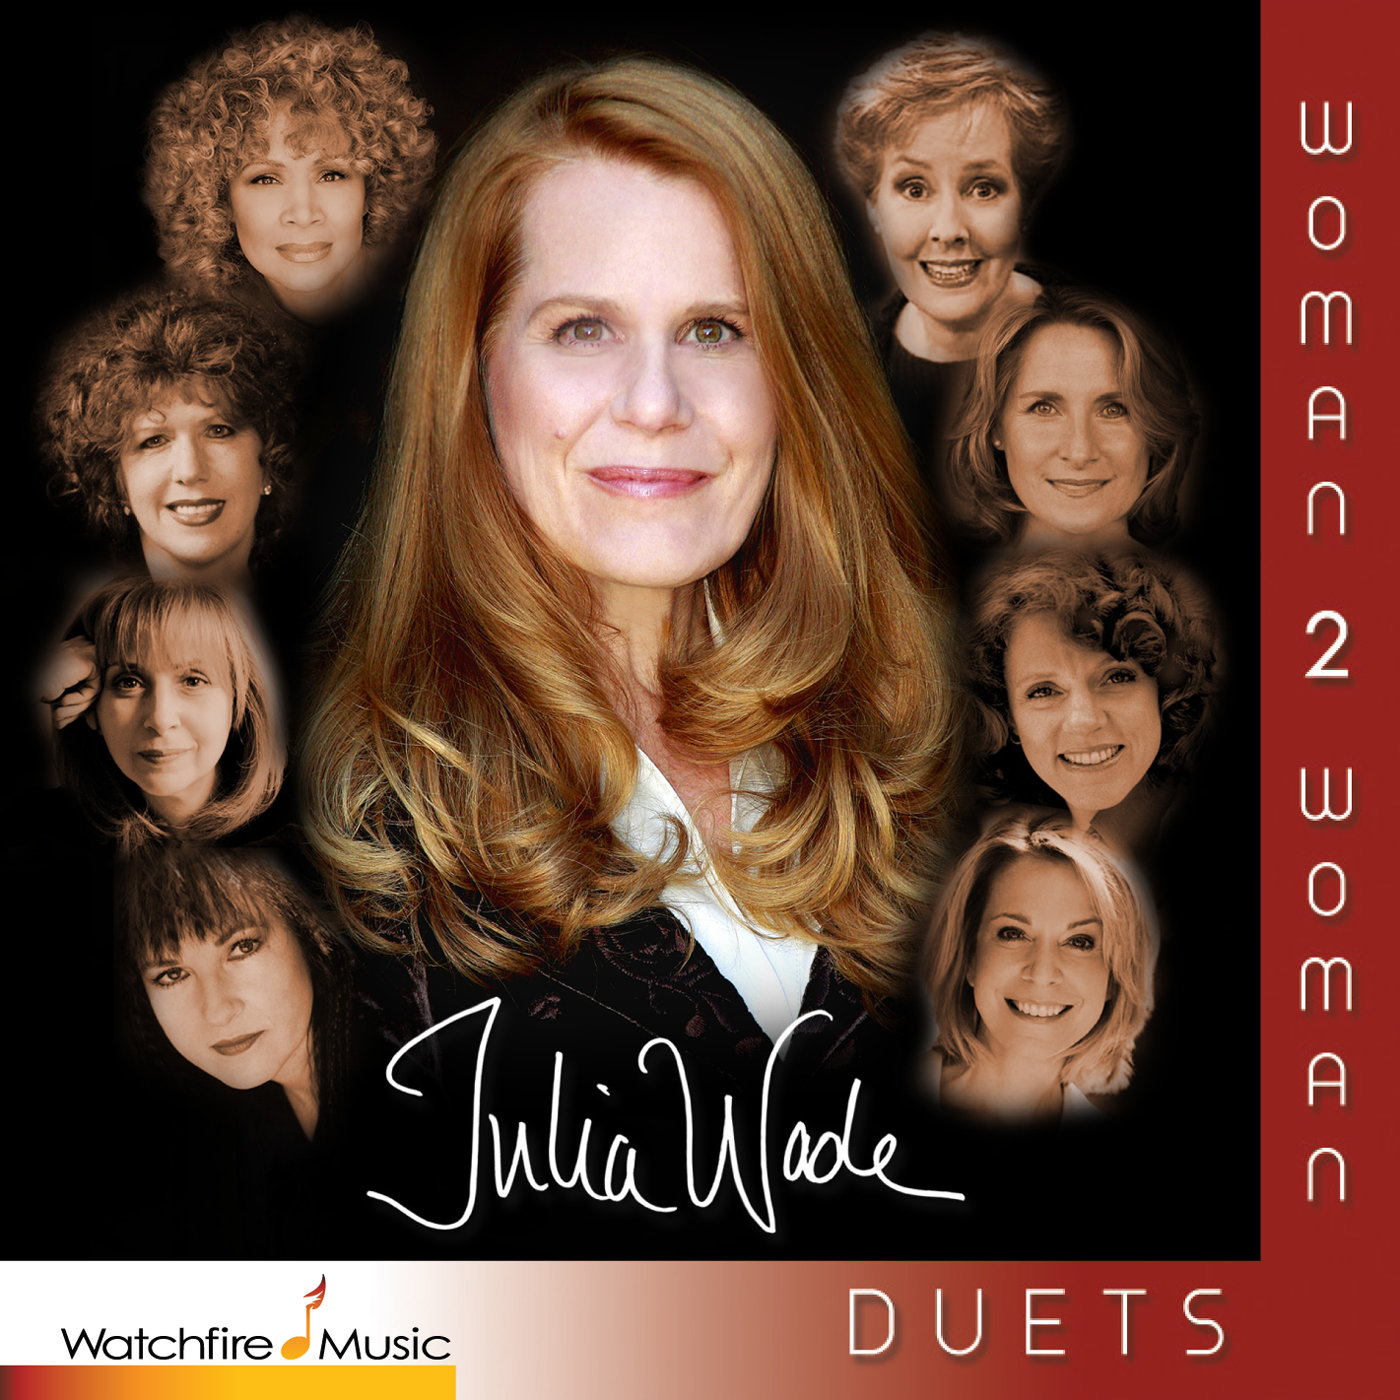 Duets - Woman 2 Woman